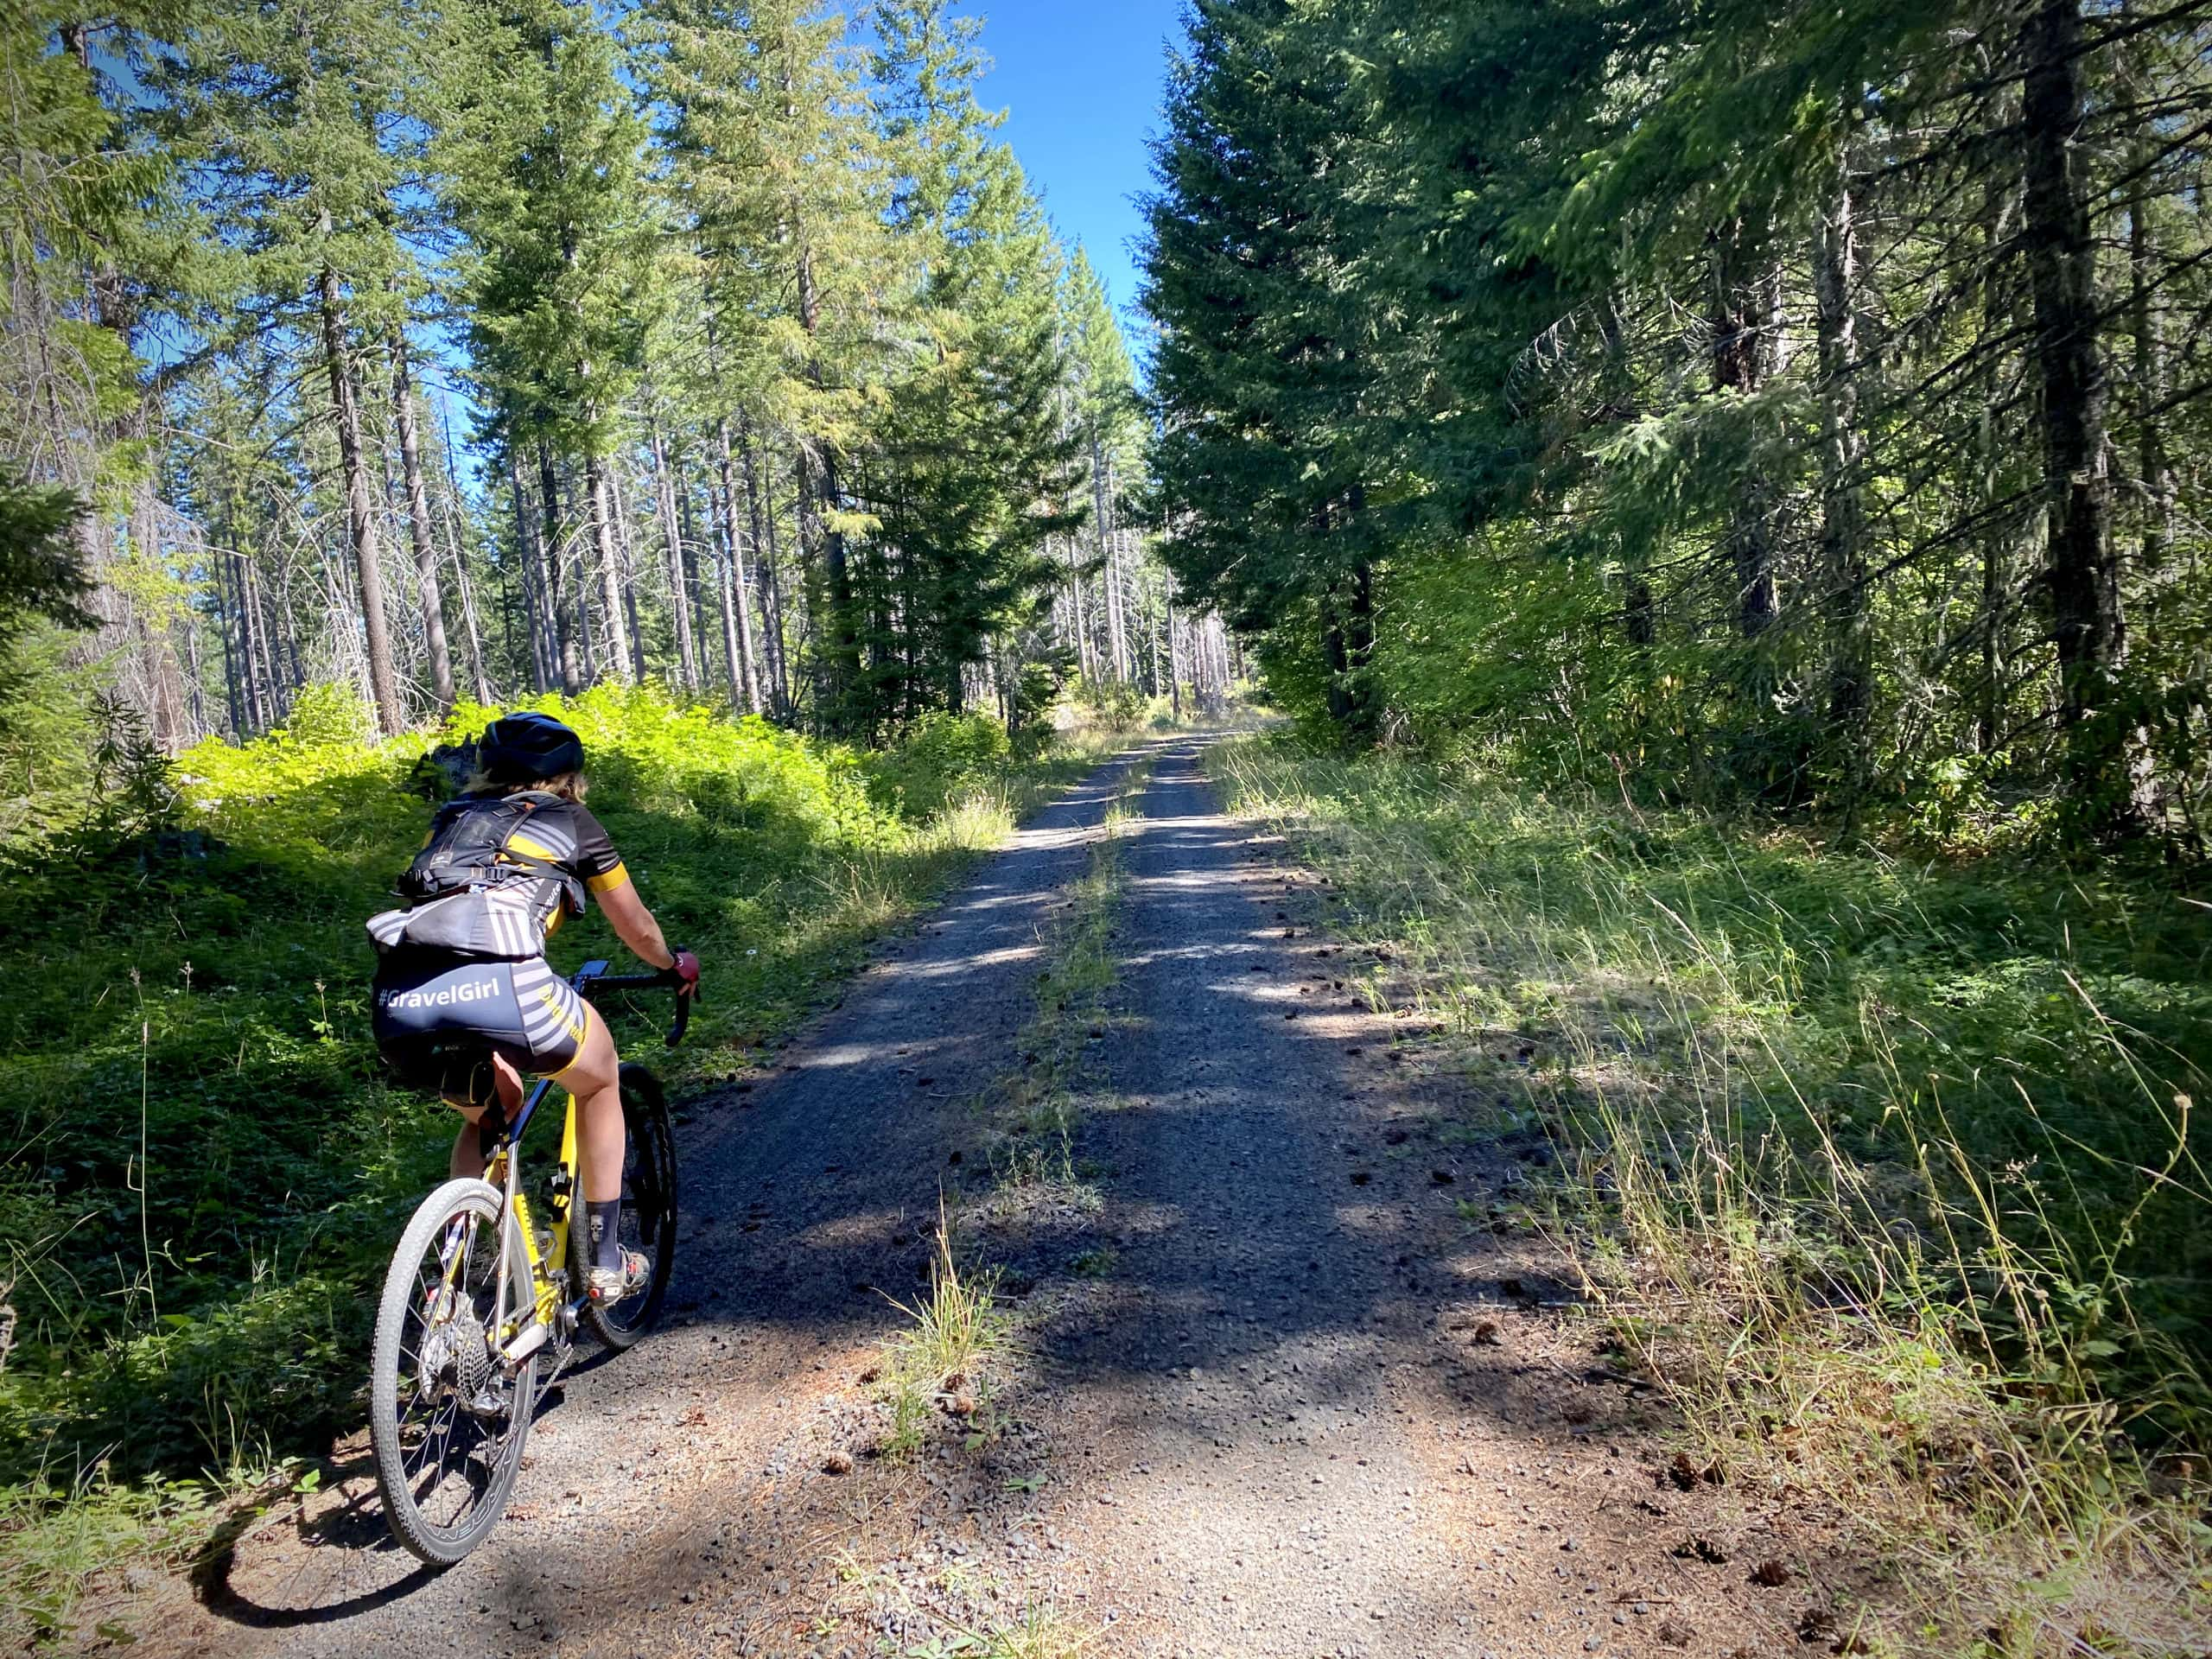 Gravel Girl on Forest Service road with grass growing up between the lanes in the Willamette National Forest.